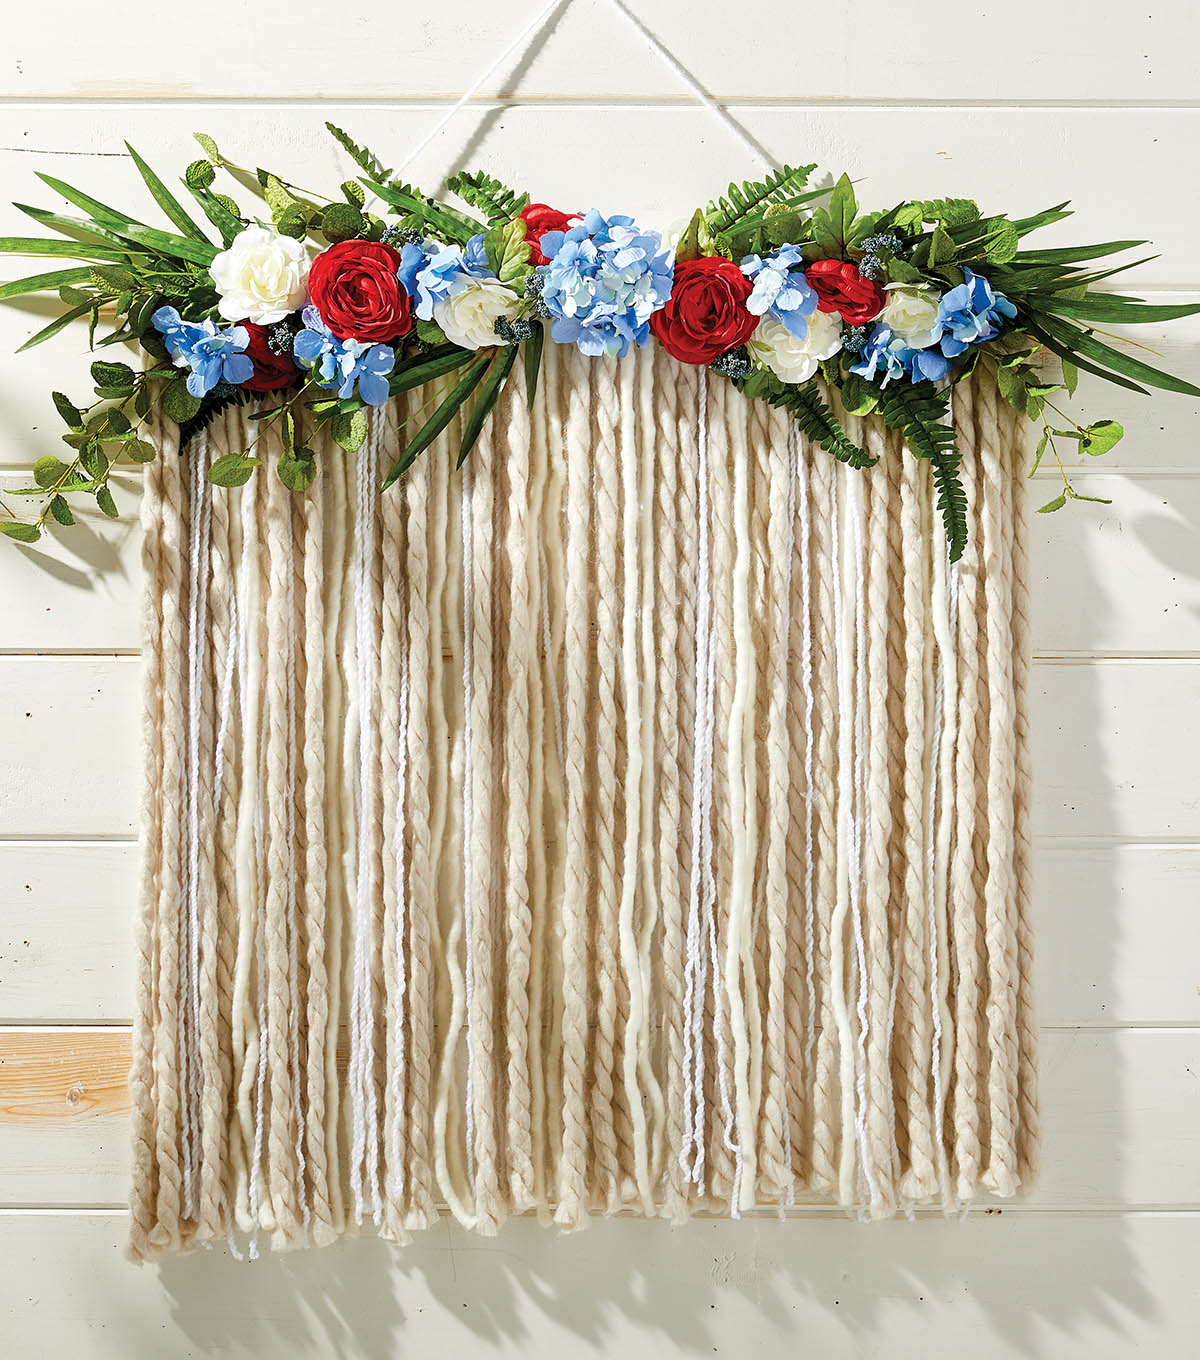 How To Make A Floral Garland Backdrop Joann